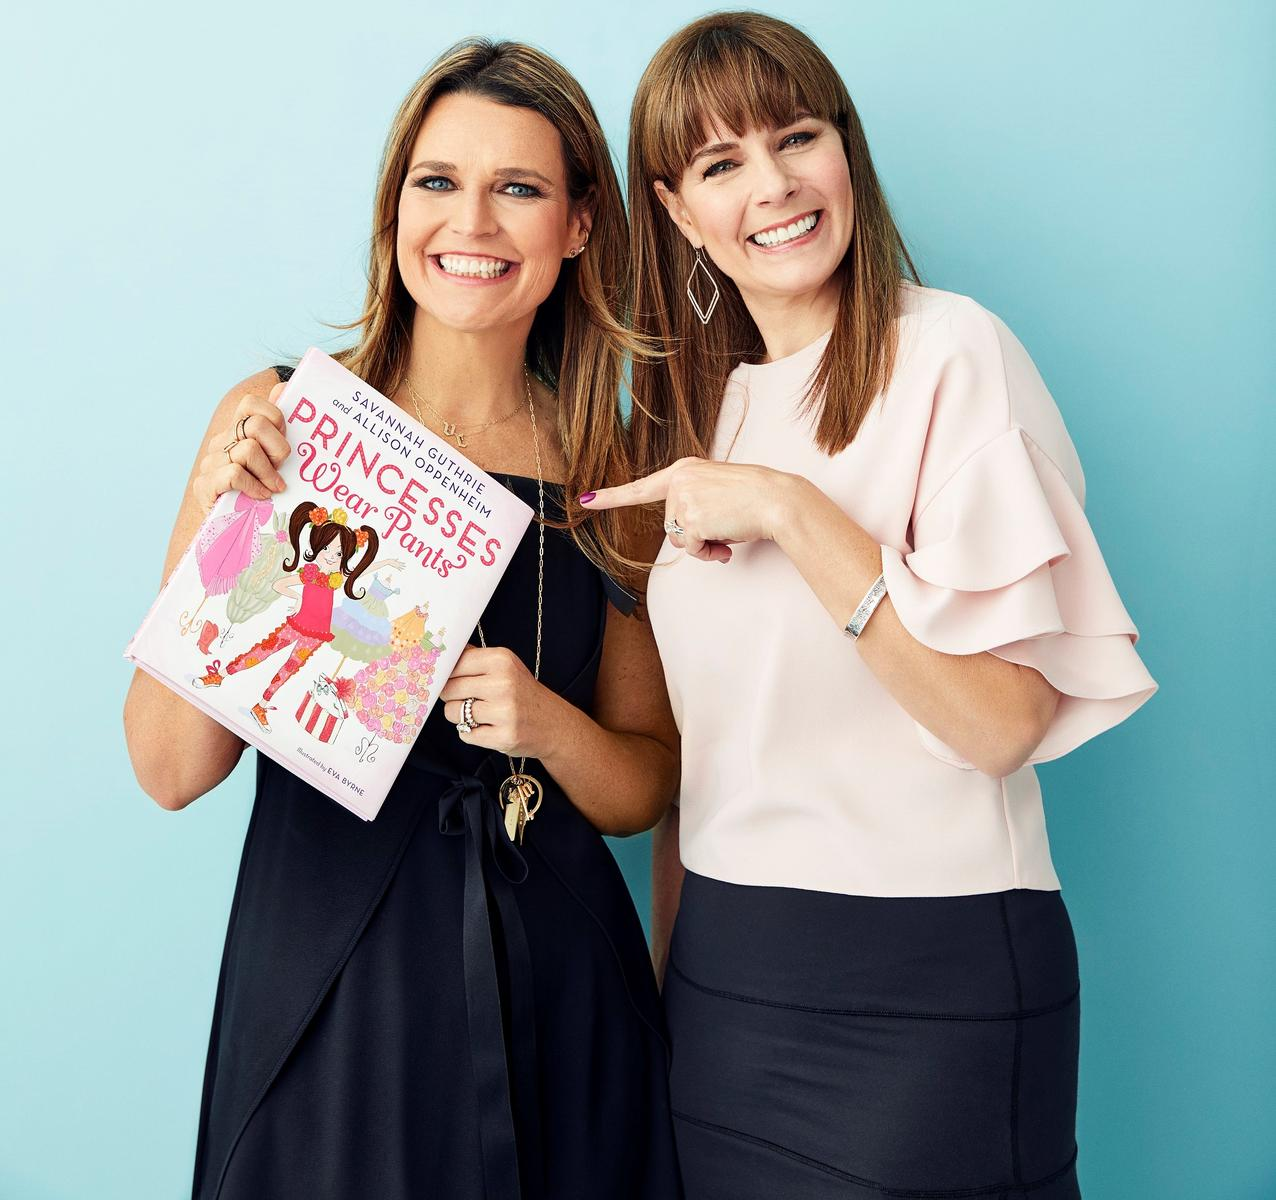 Savannah Guthrie On Writing—and Sharing—Stories